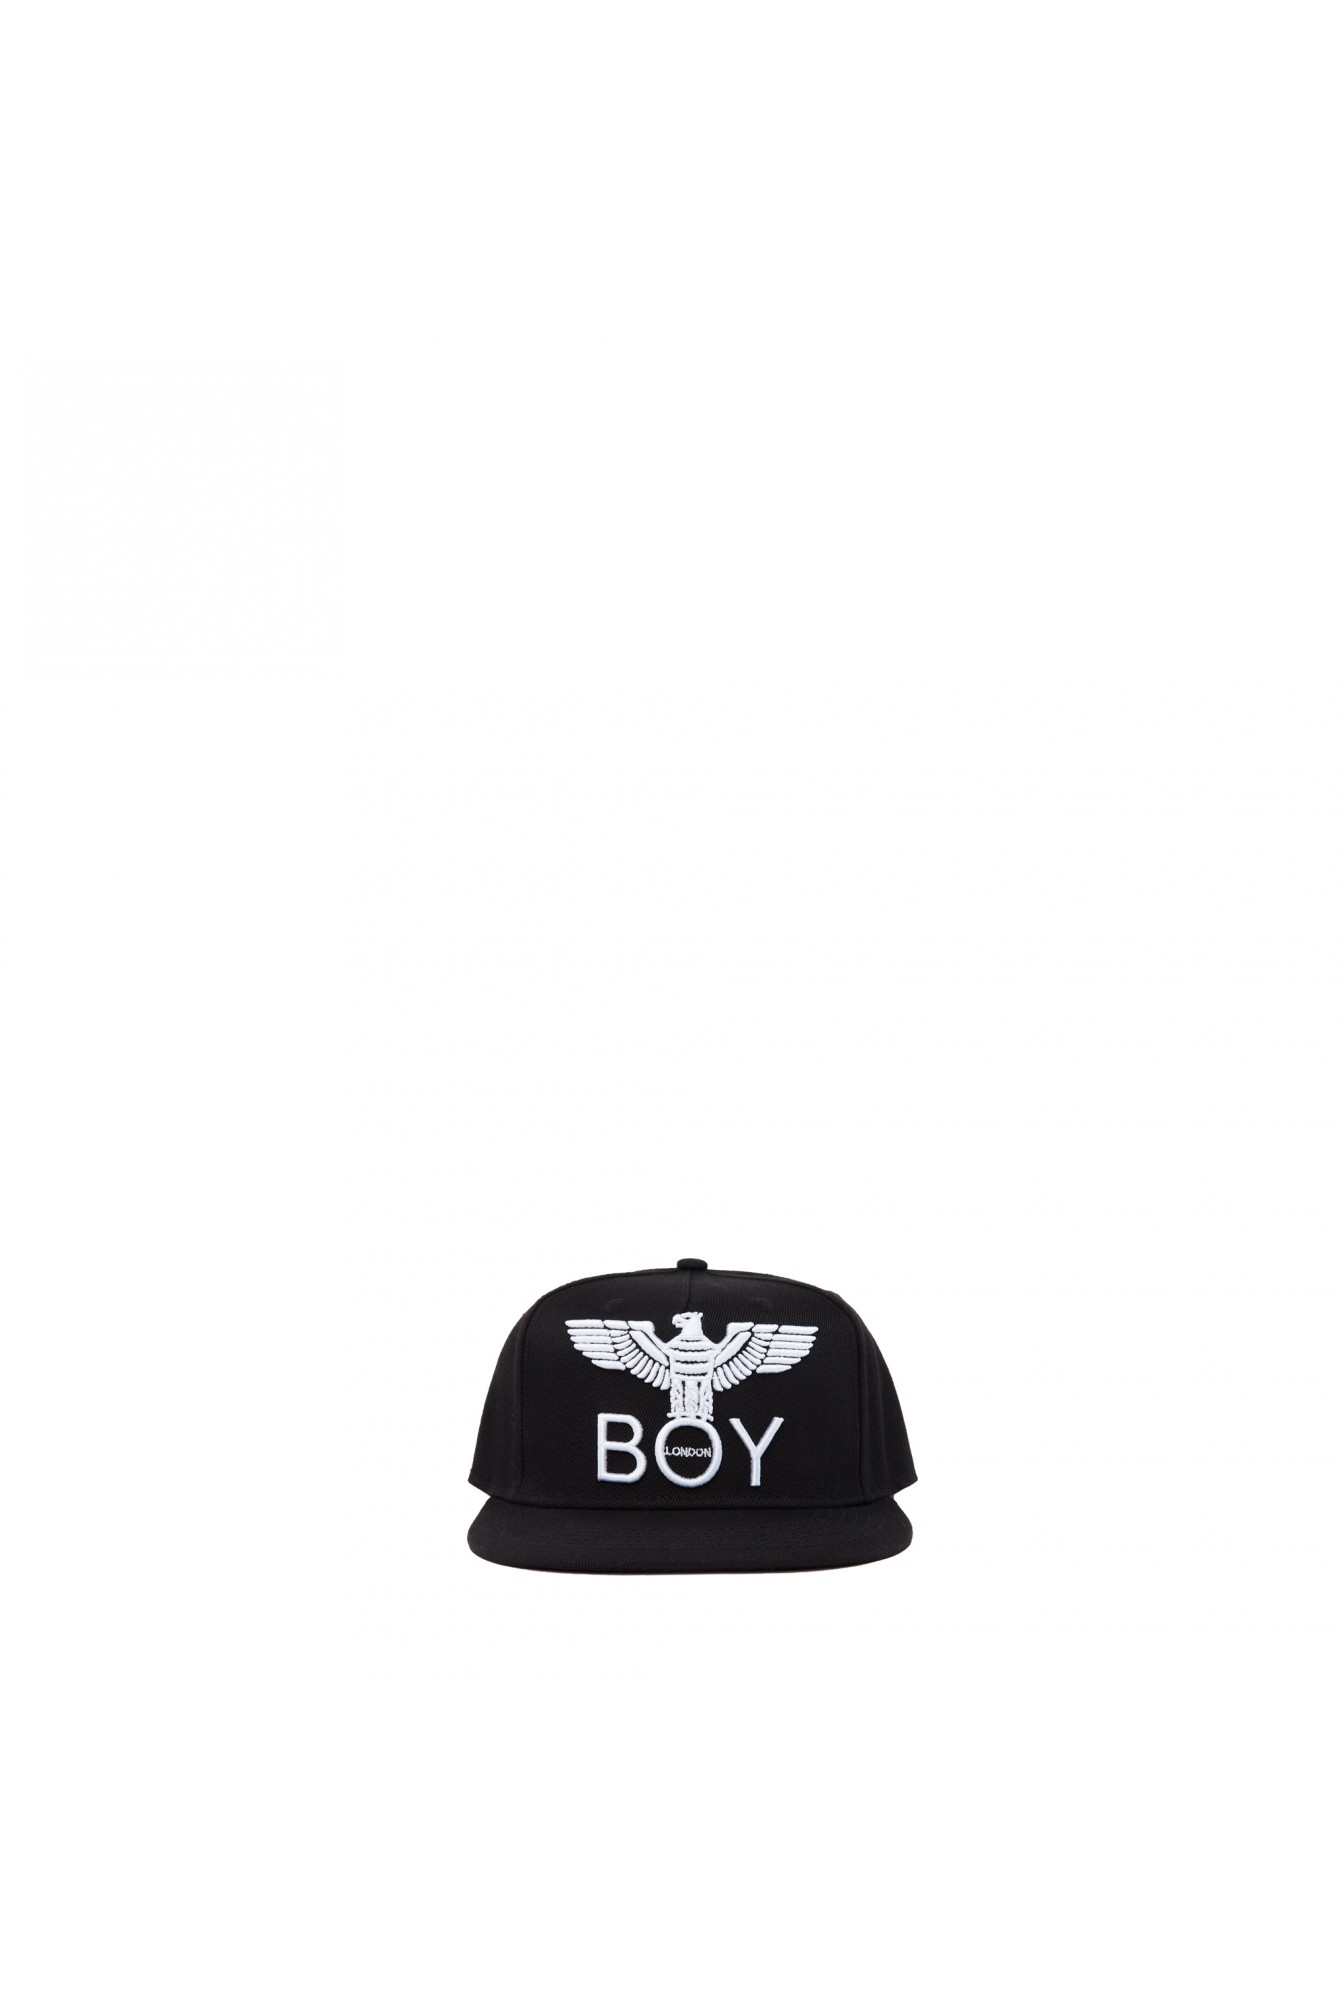 CAPPELLO - BLA400 - BOY LONDON